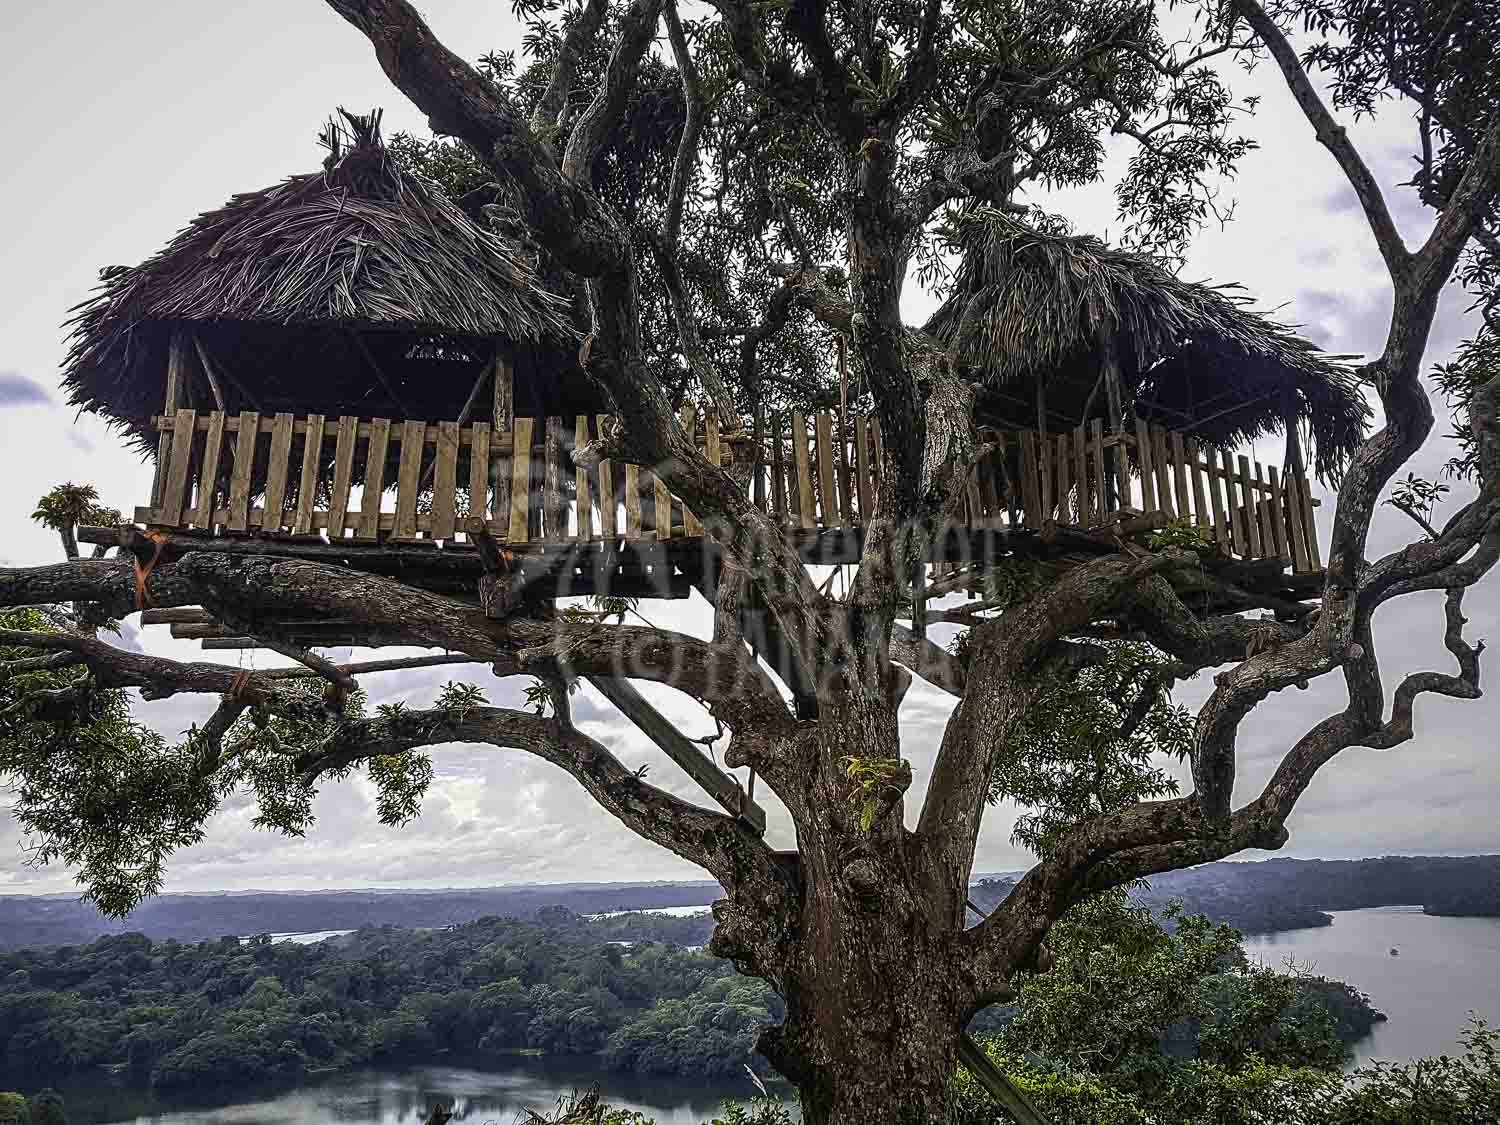 treehouse-at-panama-zipline-base